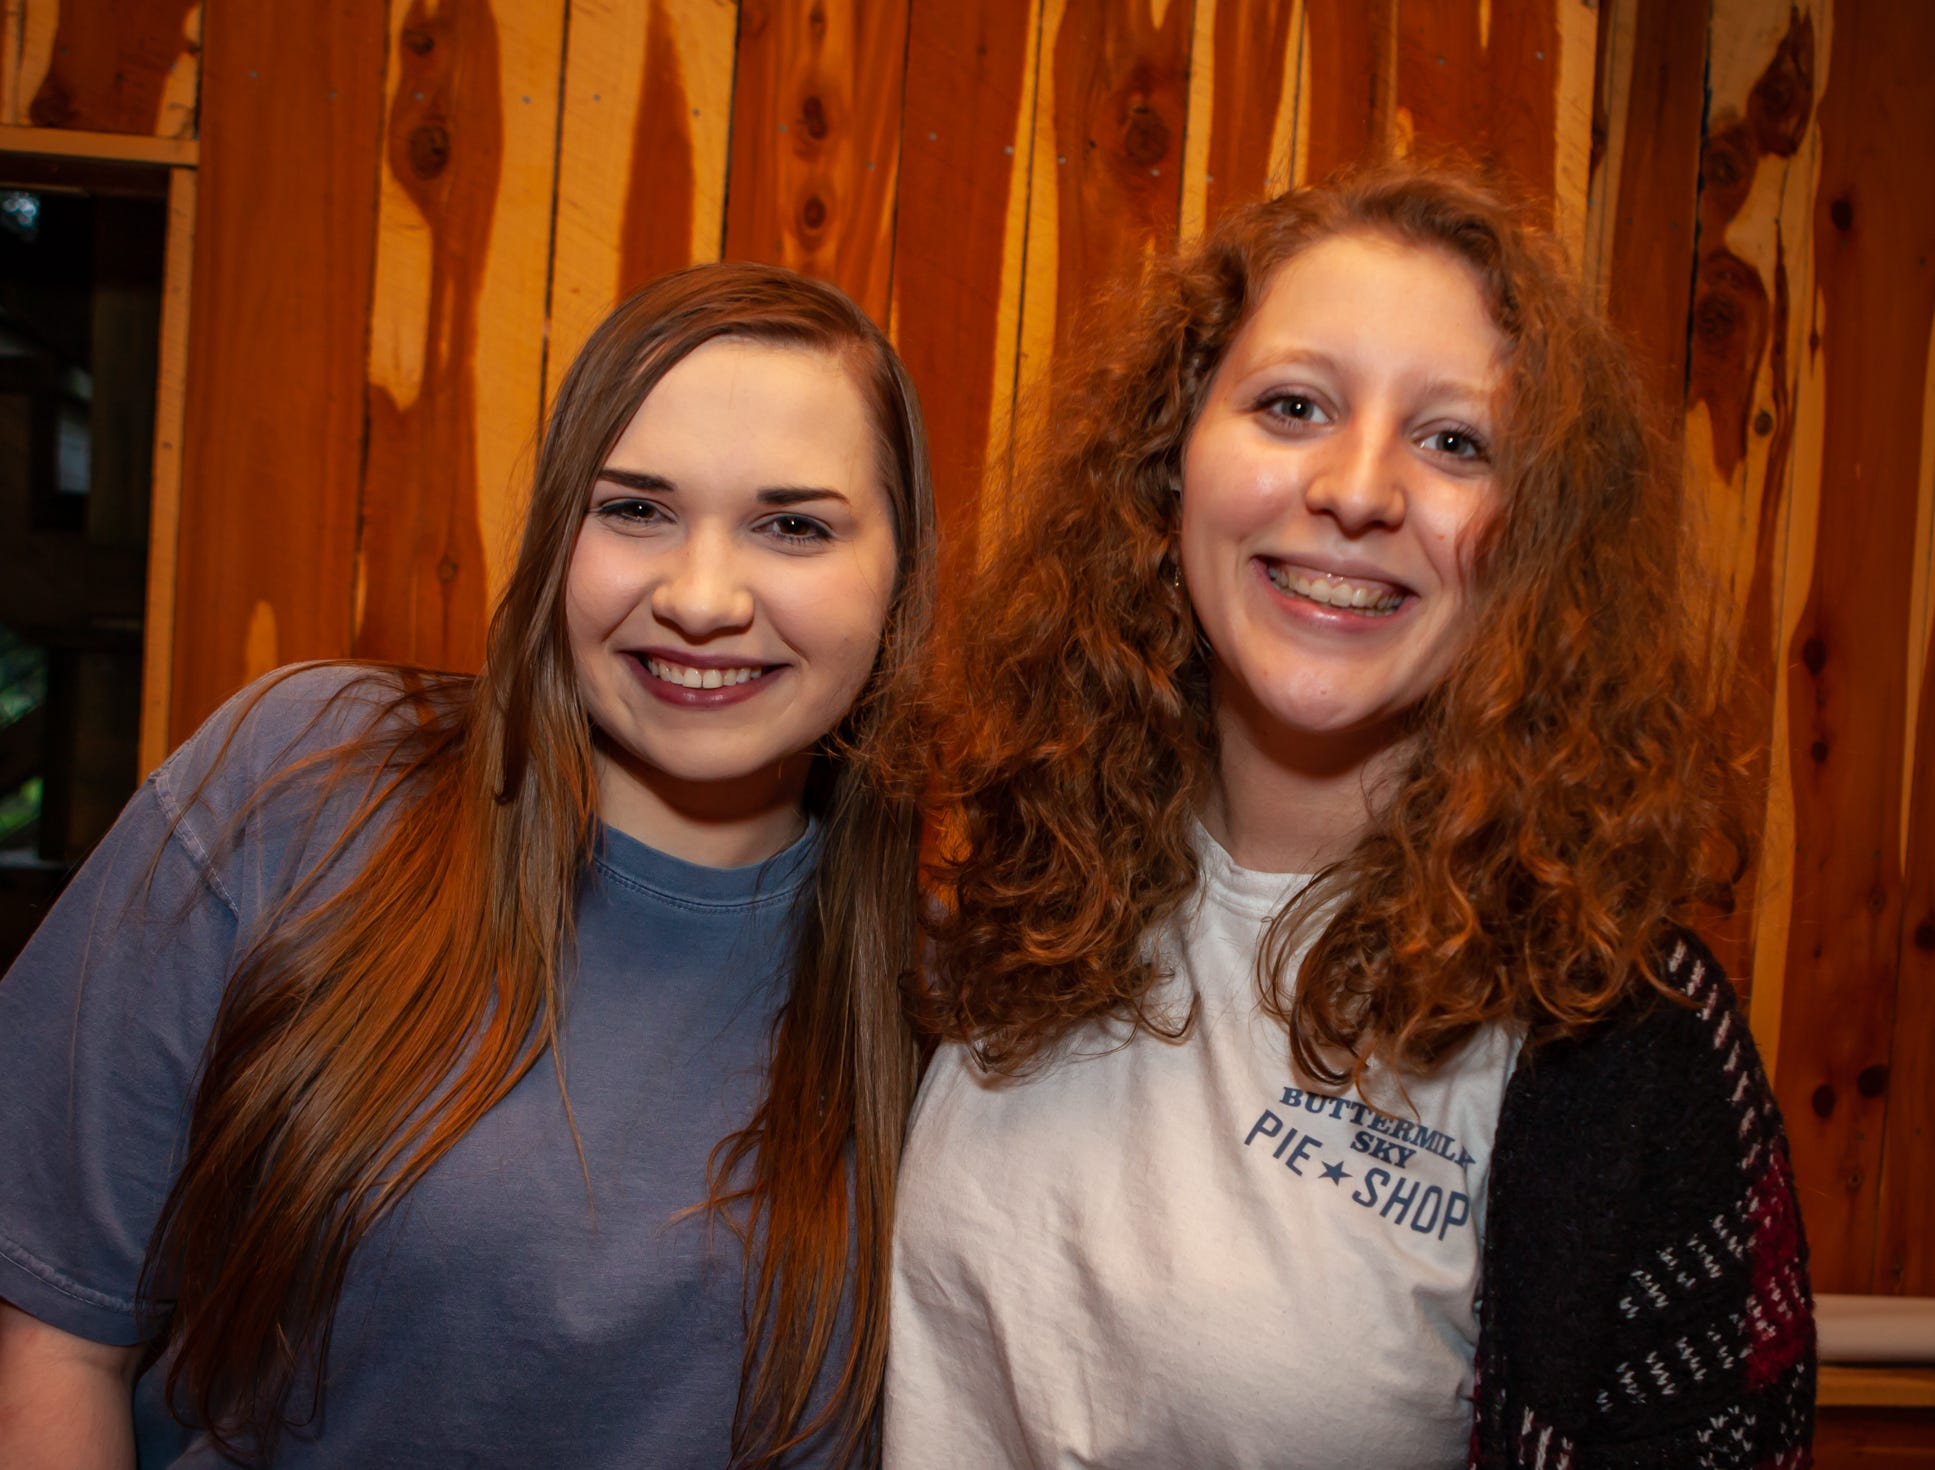 Boots and Brews: Hannah Hingst and Shelby Ann Brakeville